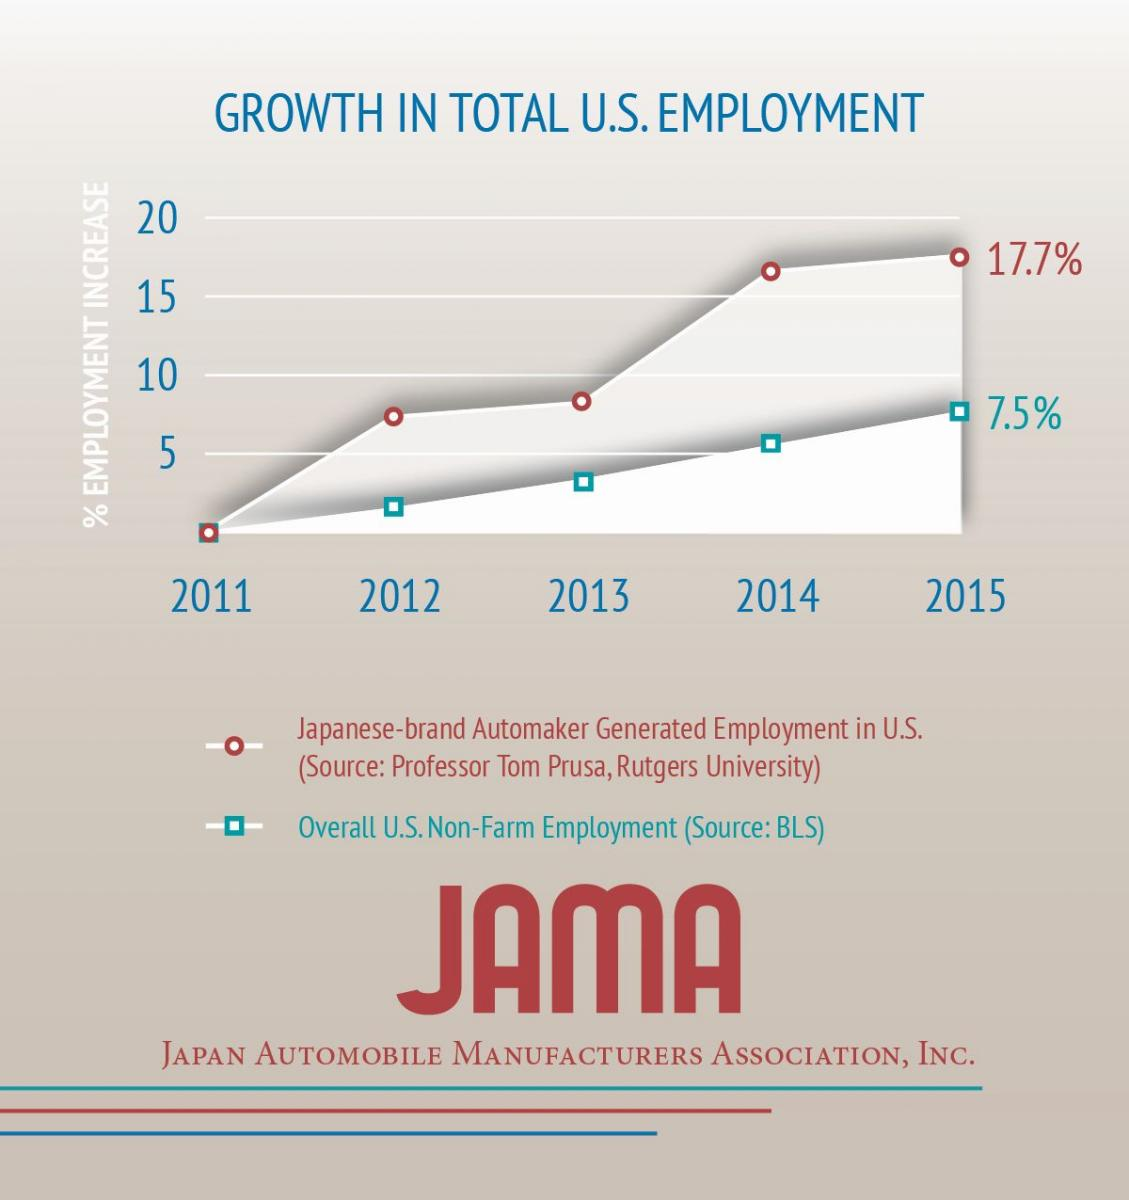 Growth in total US Employment, 2011-2015. Image: JAMA.